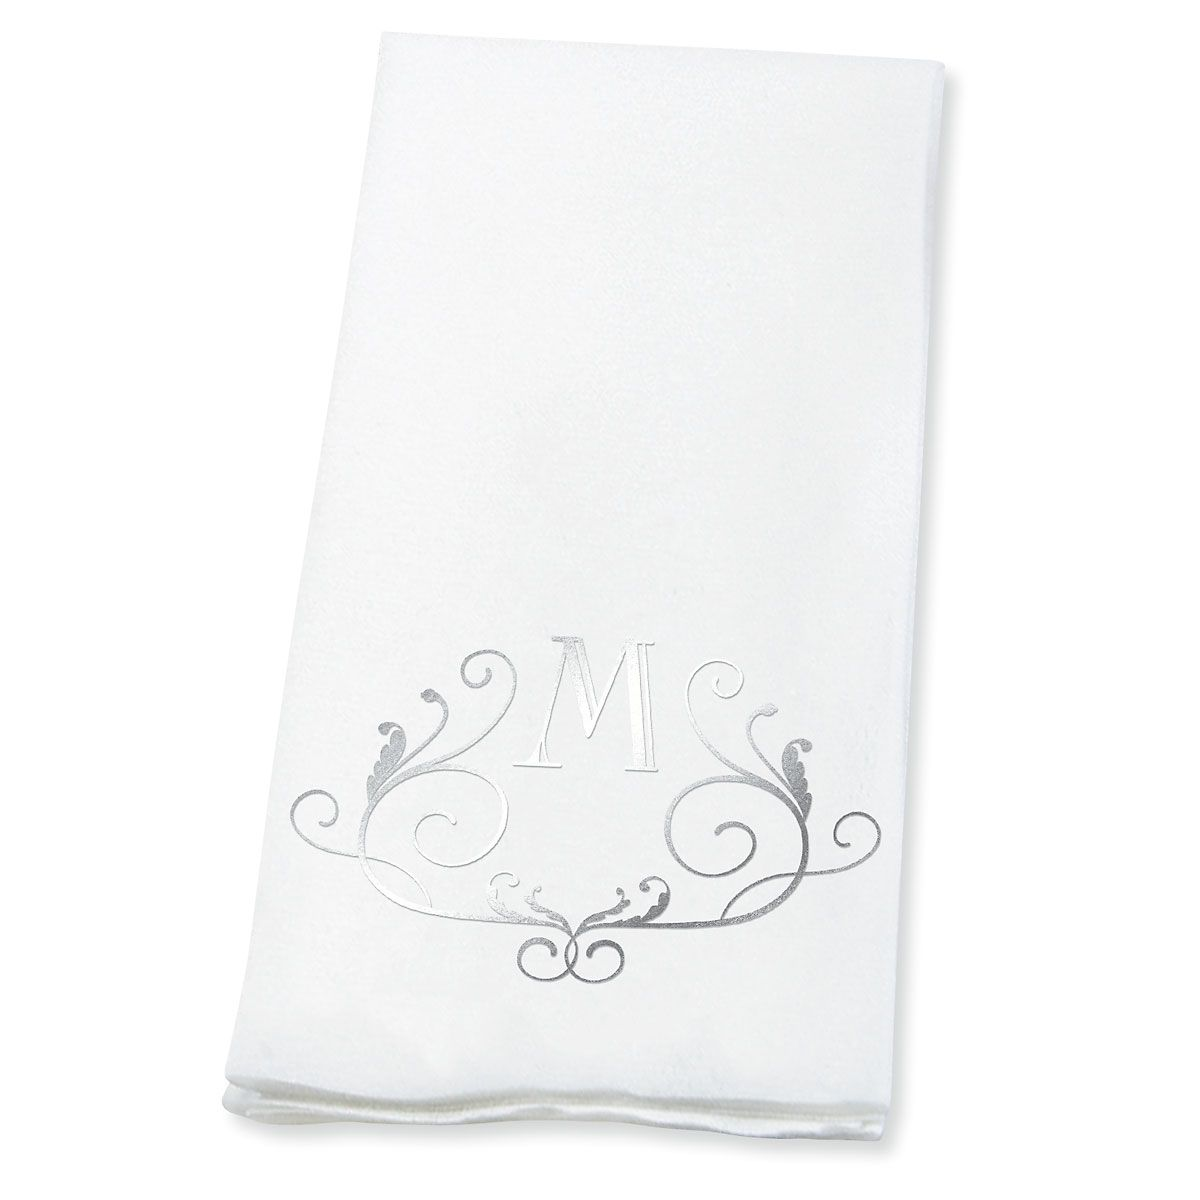 Personalized Scroll Initial Foil-Stamped Hand Towels